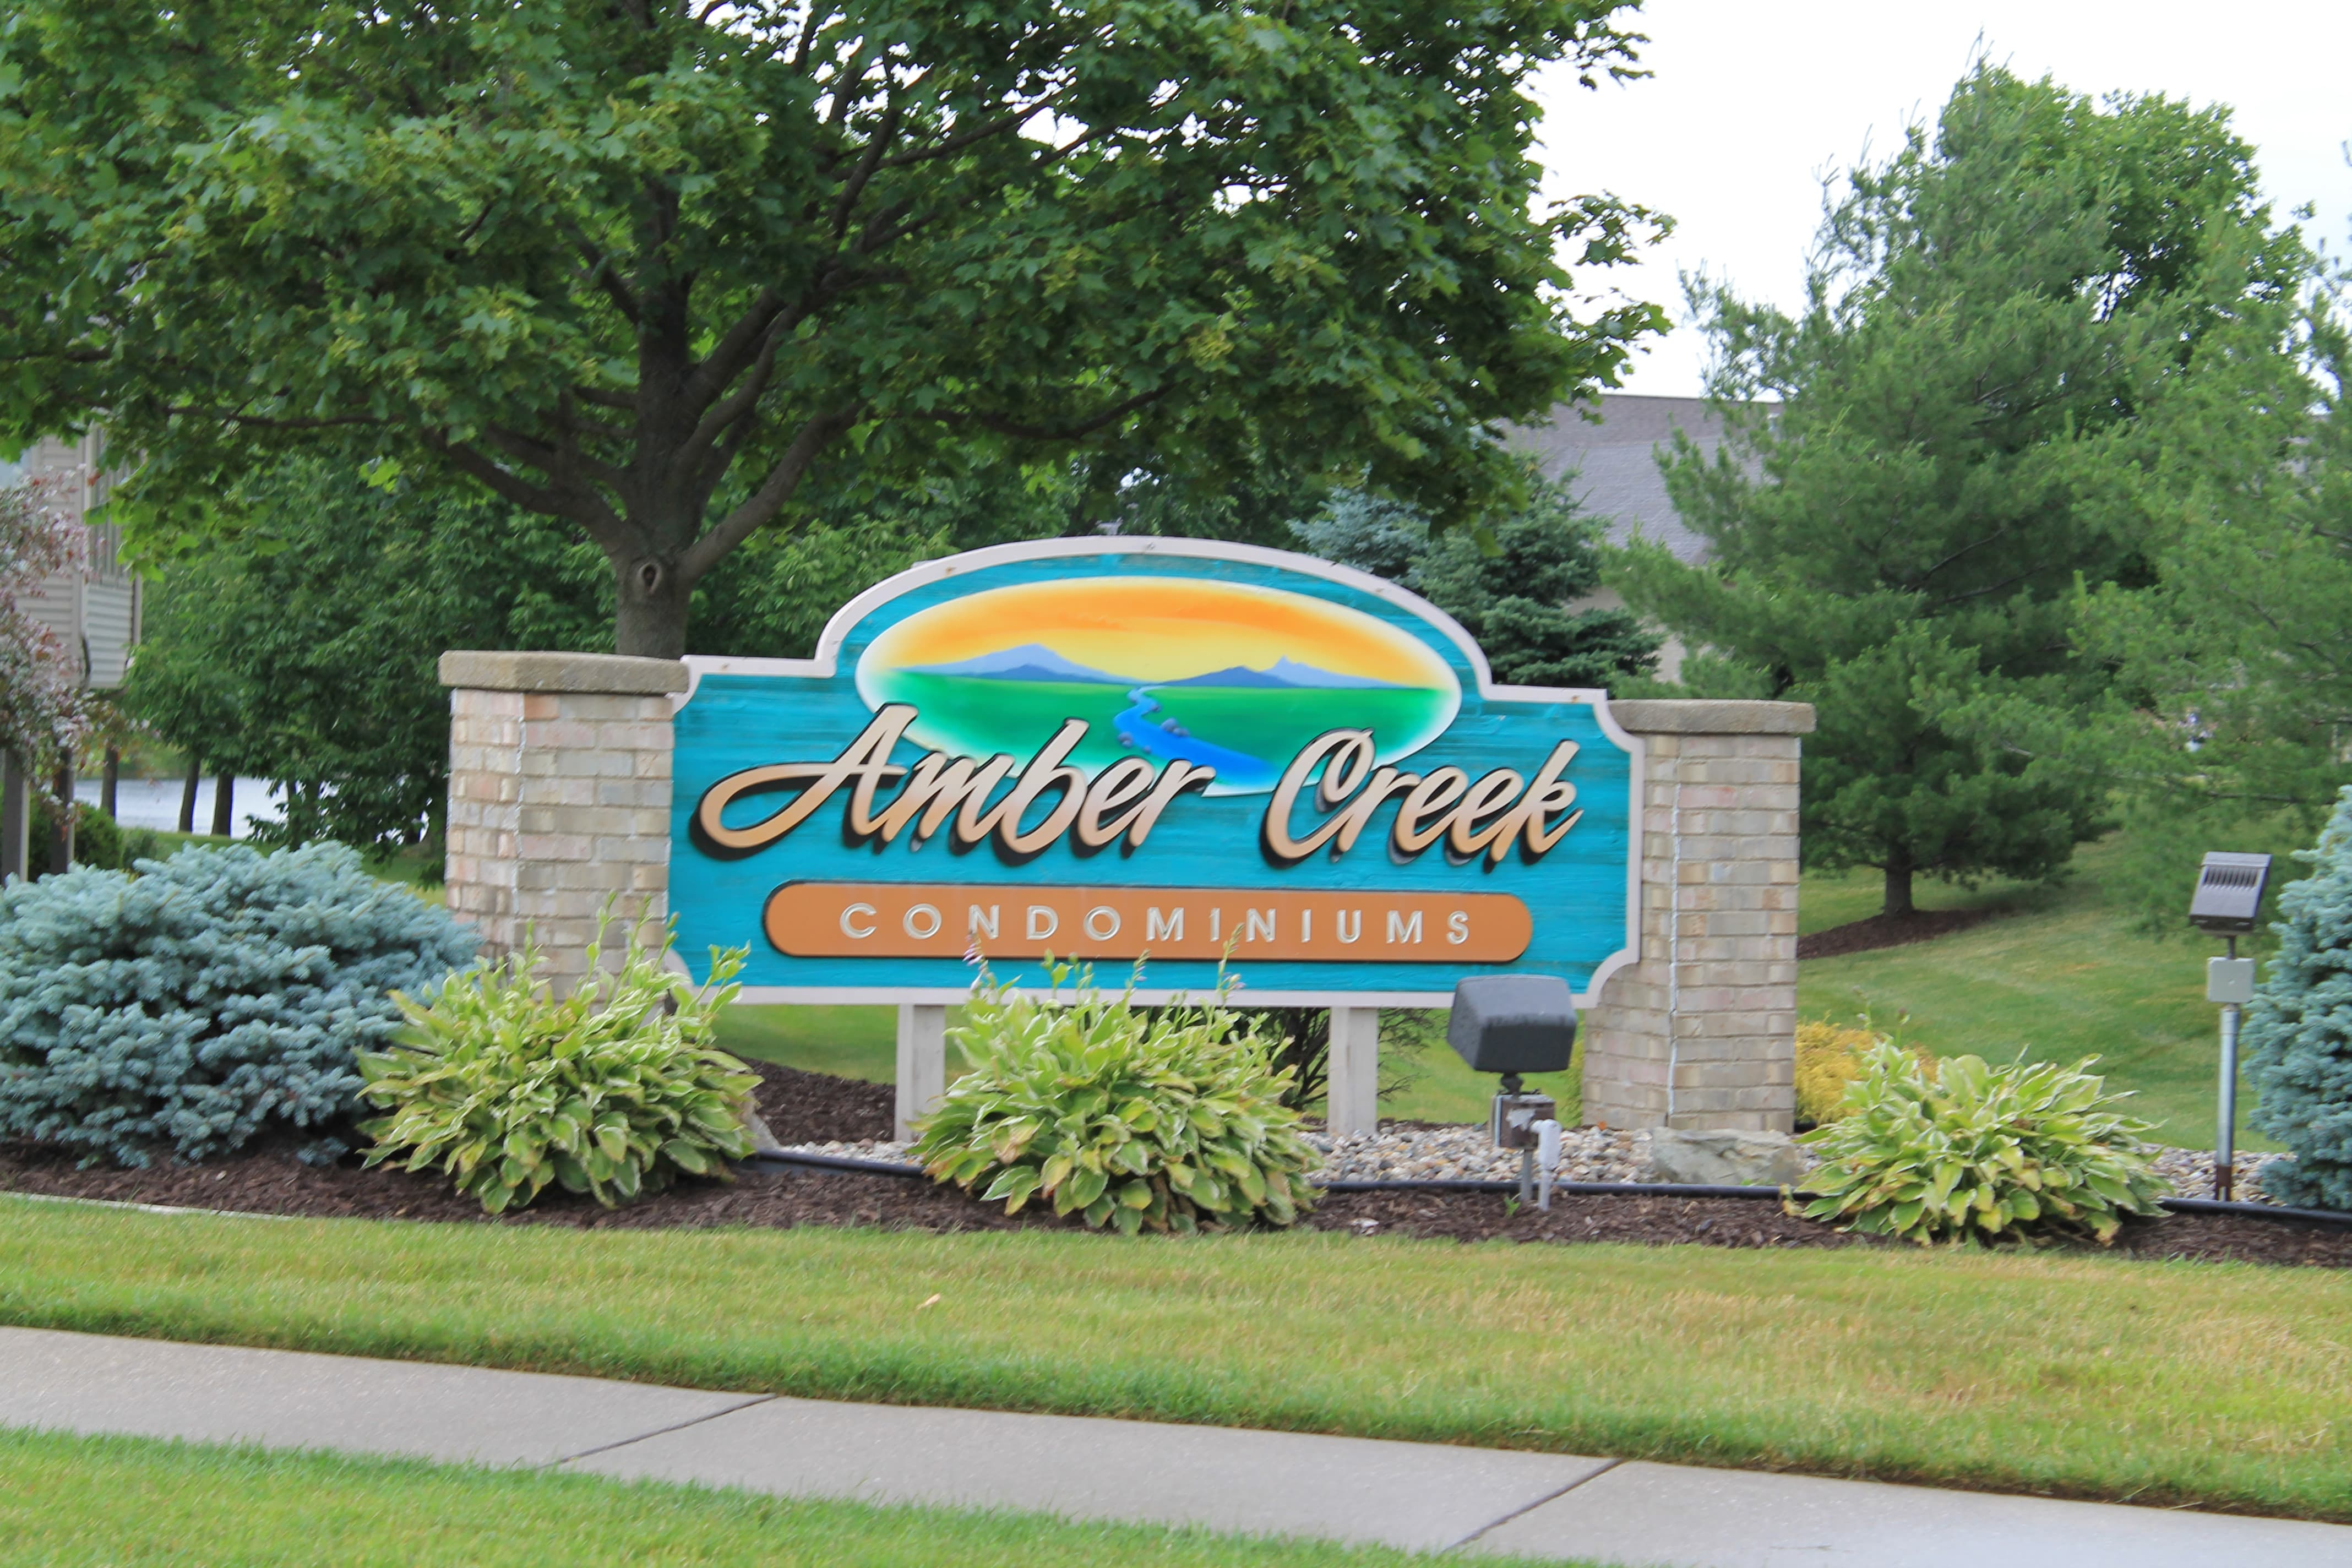 Entrance sign of Amber Creek Condominiums